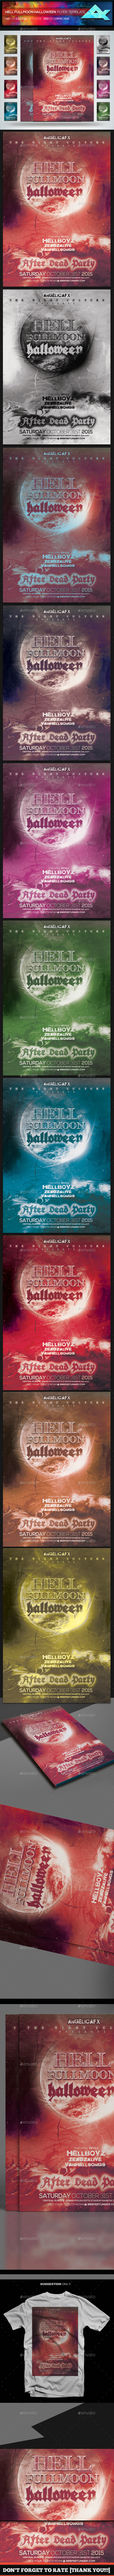 Halloween Hell Fullmoon Flyer Template - Flyers Print Templates